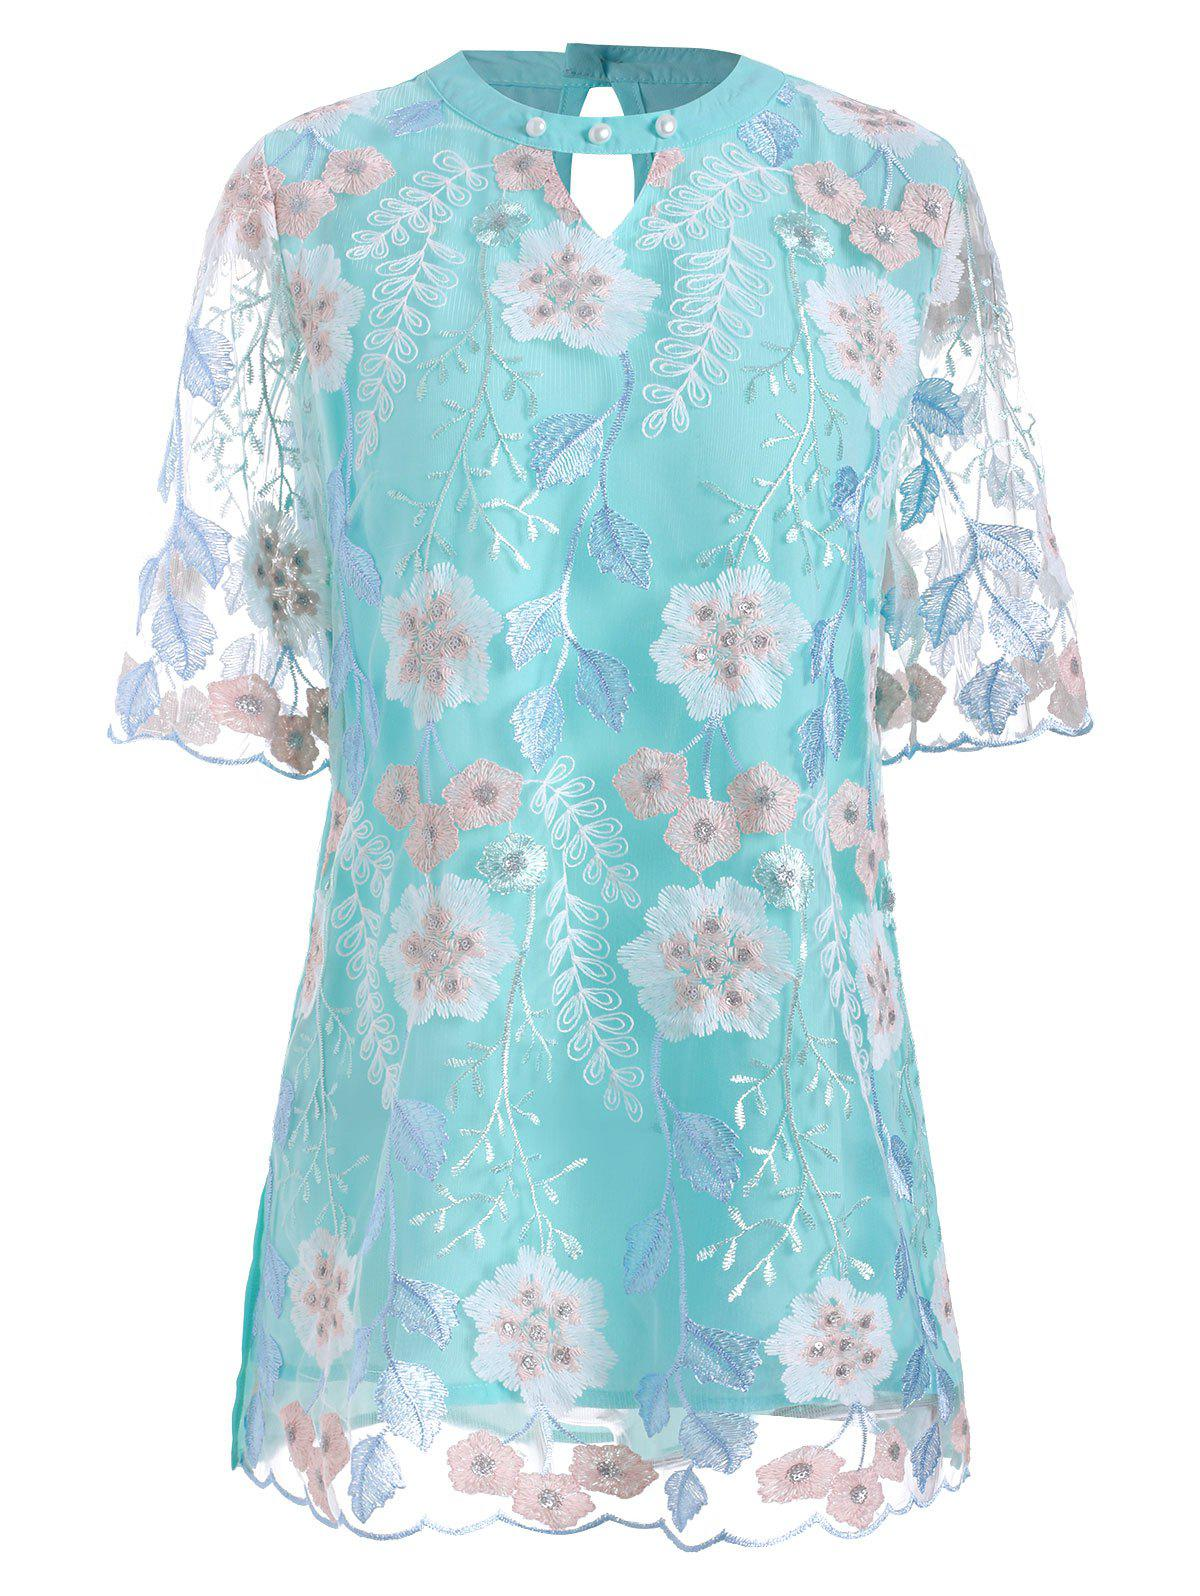 Shop Floral Embroidered Cut Out Mesh Panel Blouse